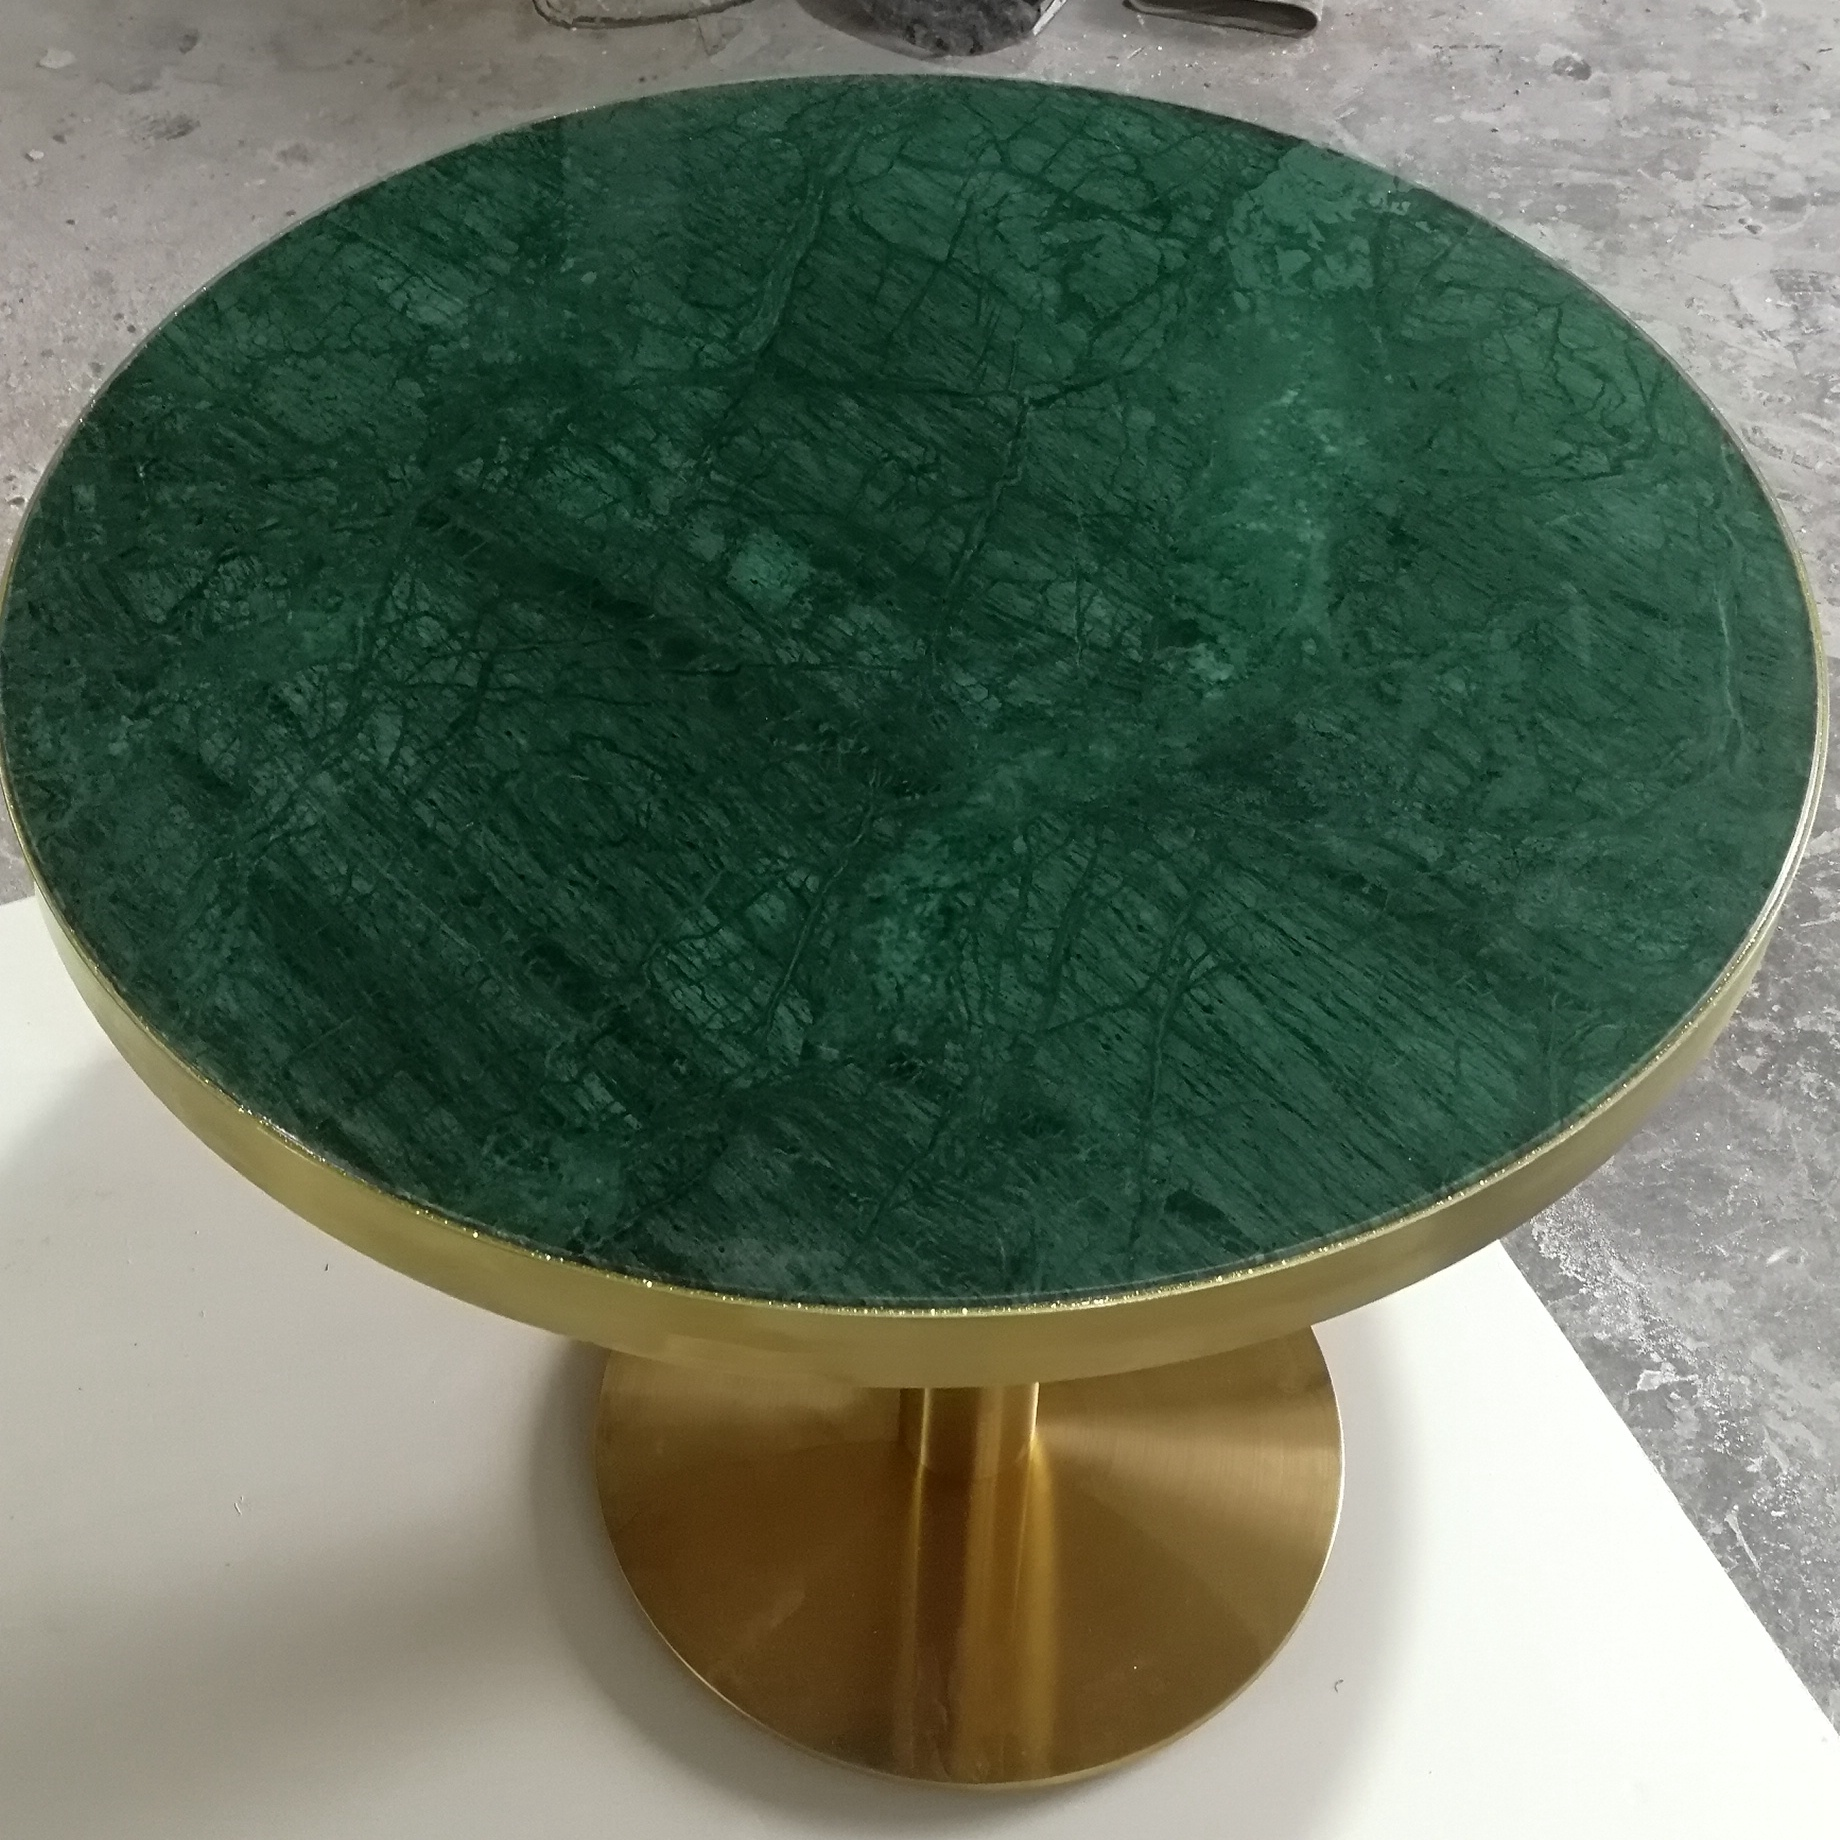 Indian Green Round Coffee Table Marble Top Marble Table Supplier